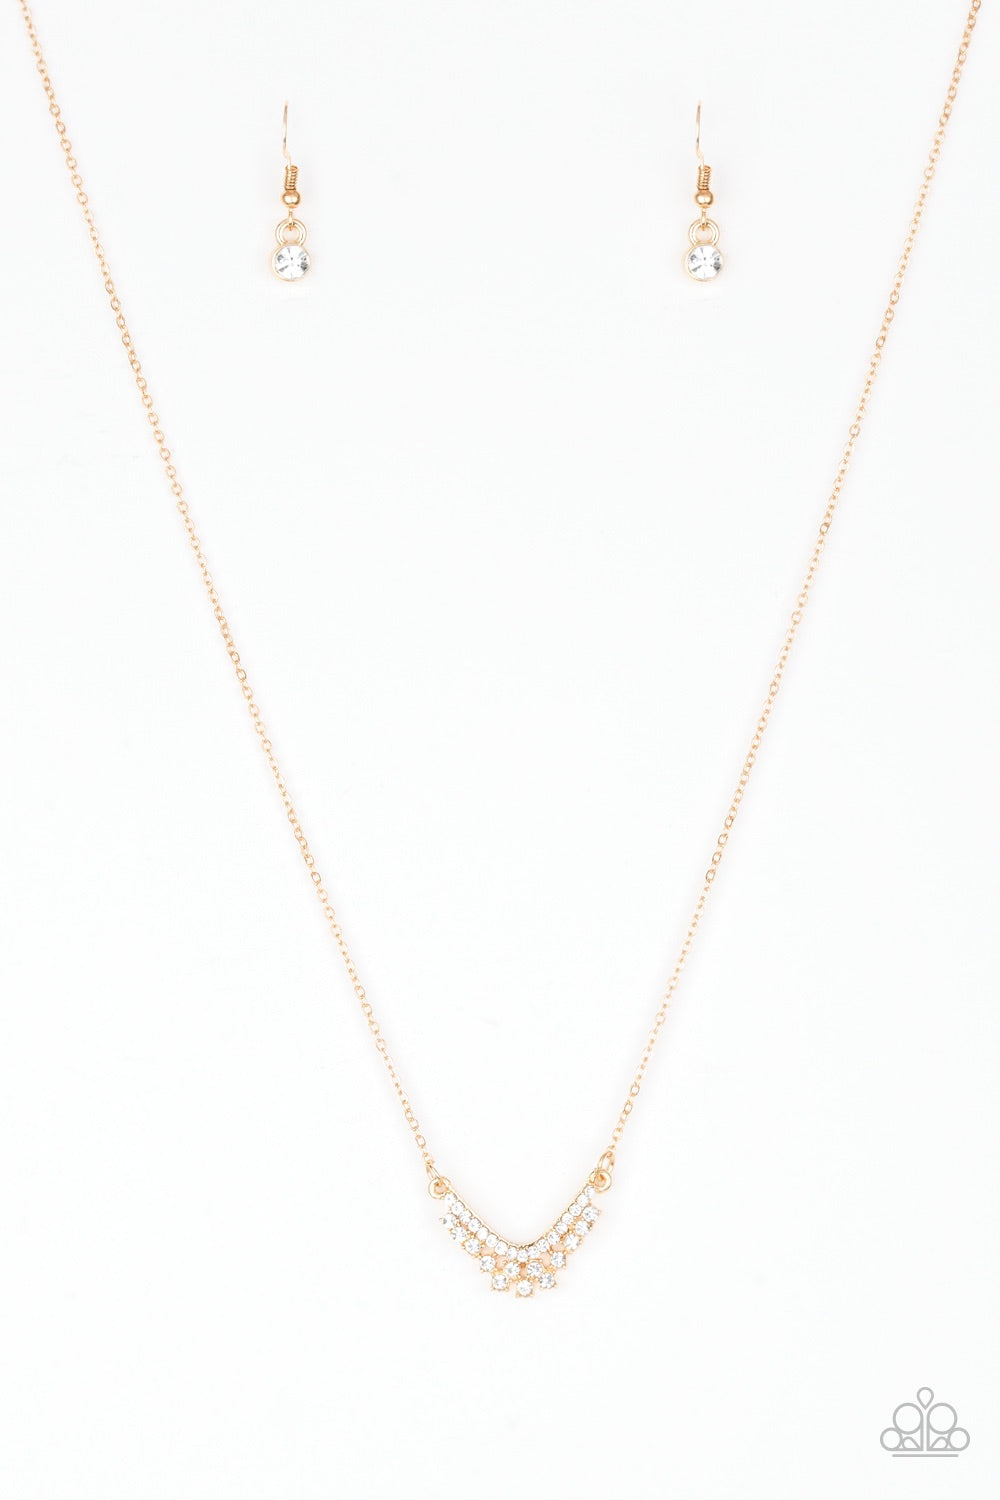 9a84b288921ed Paparazzi Accessories Necklaces Classically Classic - Gold Necklace